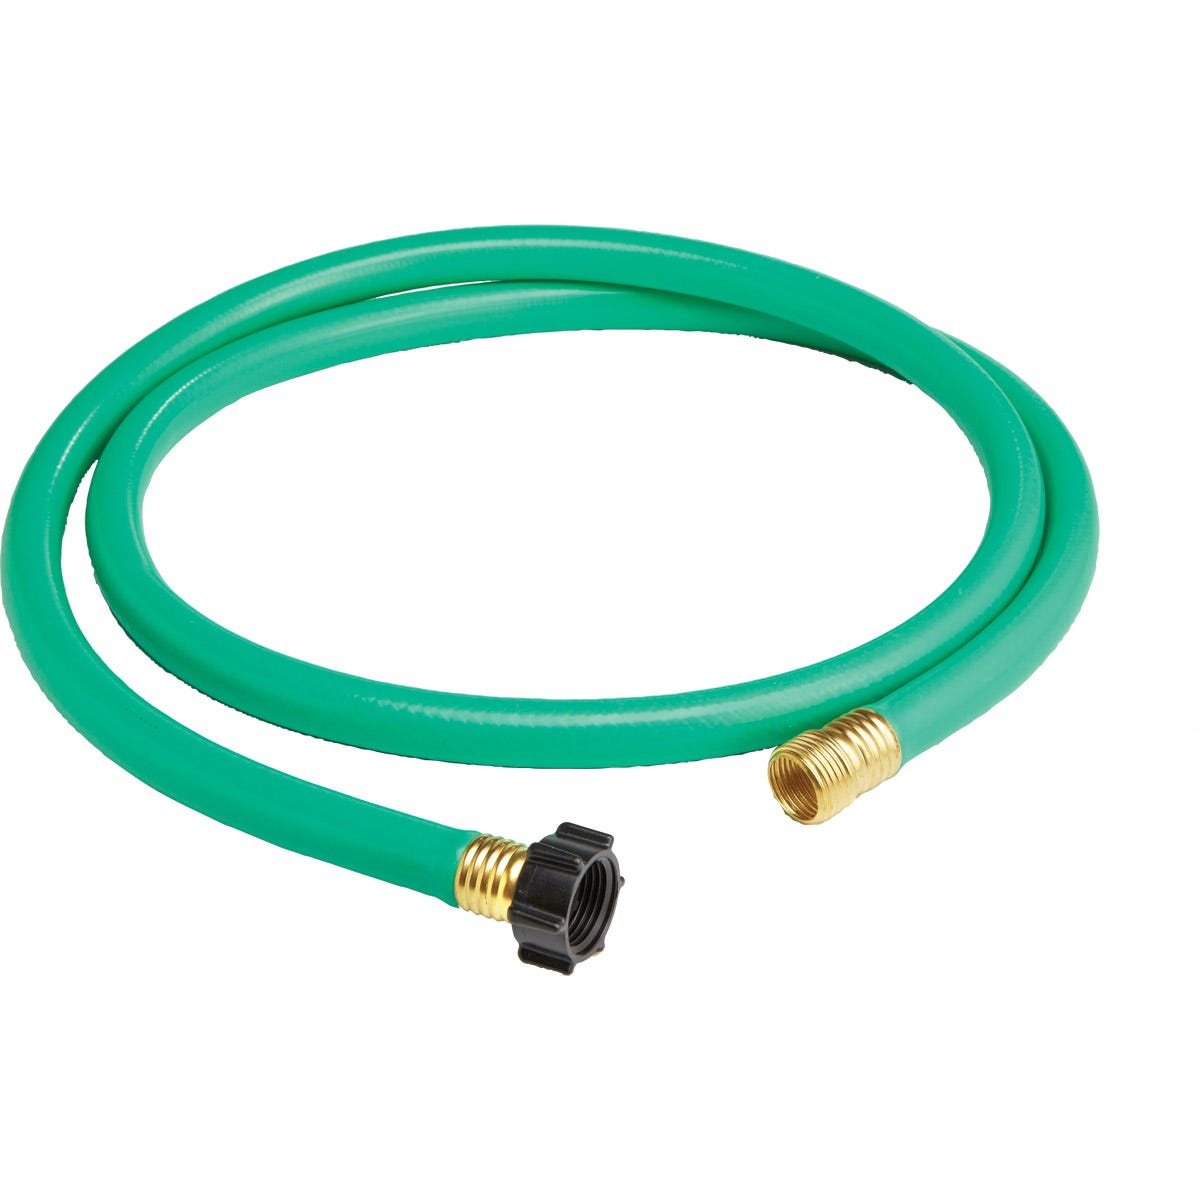 Leader Garden Hose 6 Ft From Sporty S Tool Shop